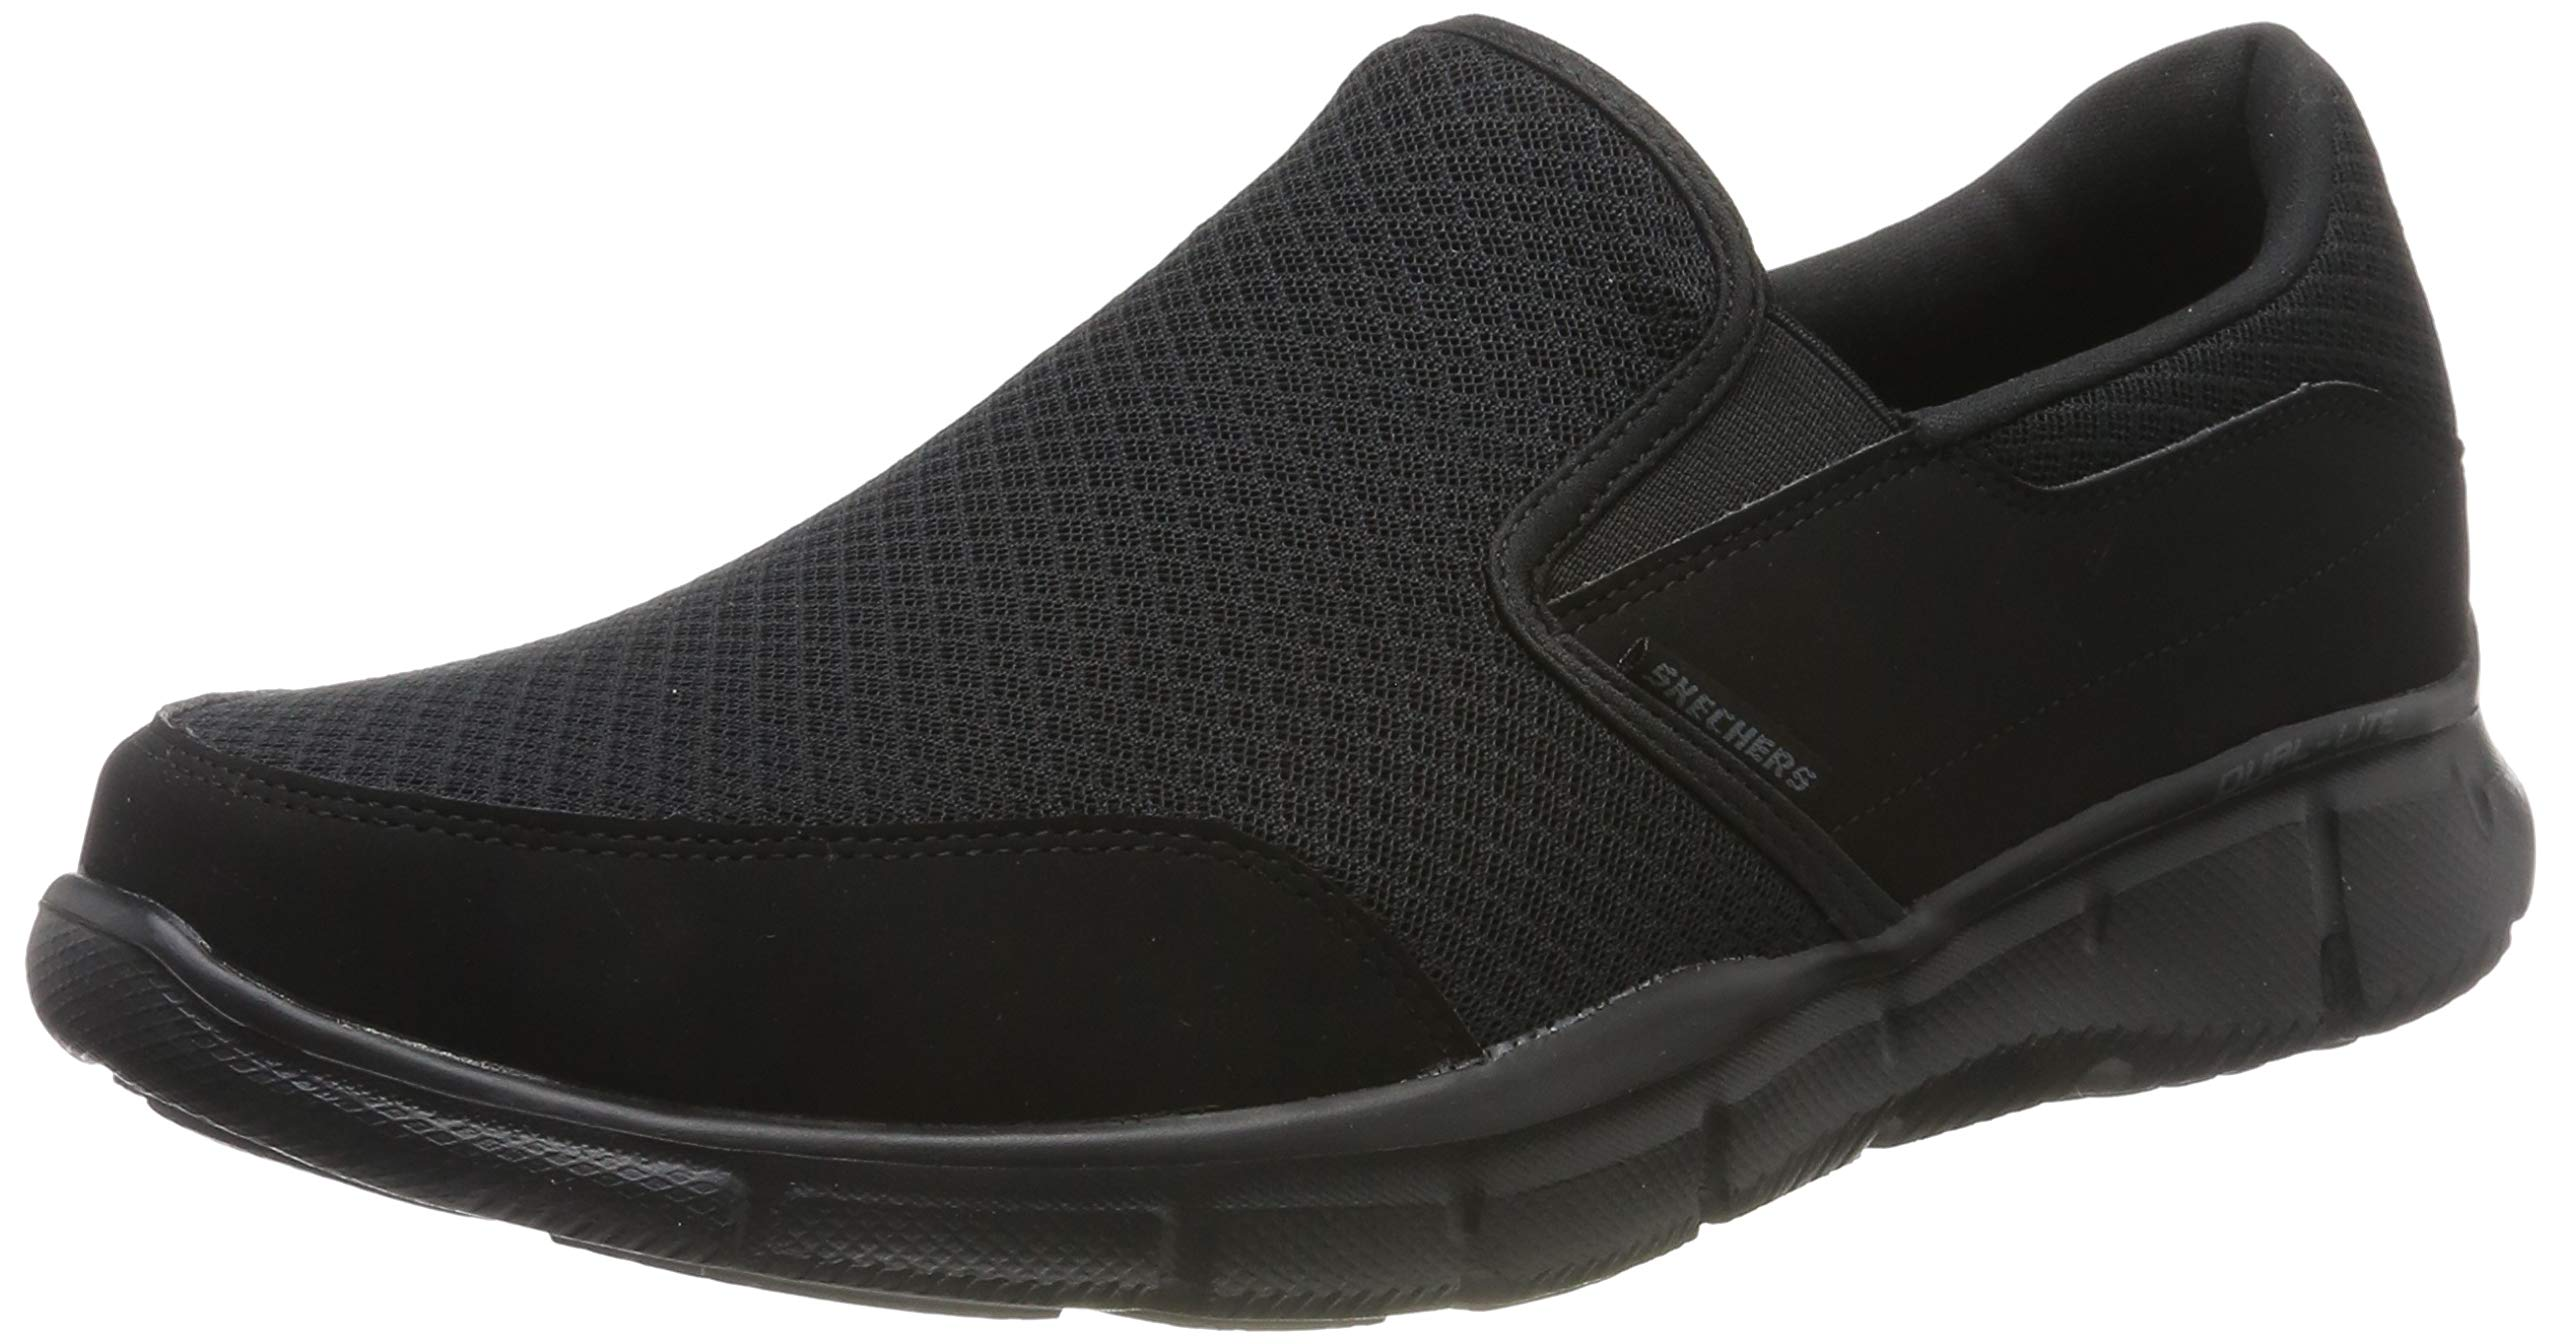 Skechers Sport Men's Equalizer Persistent Slip-On Sneaker, Black, 7 M US by Skechers